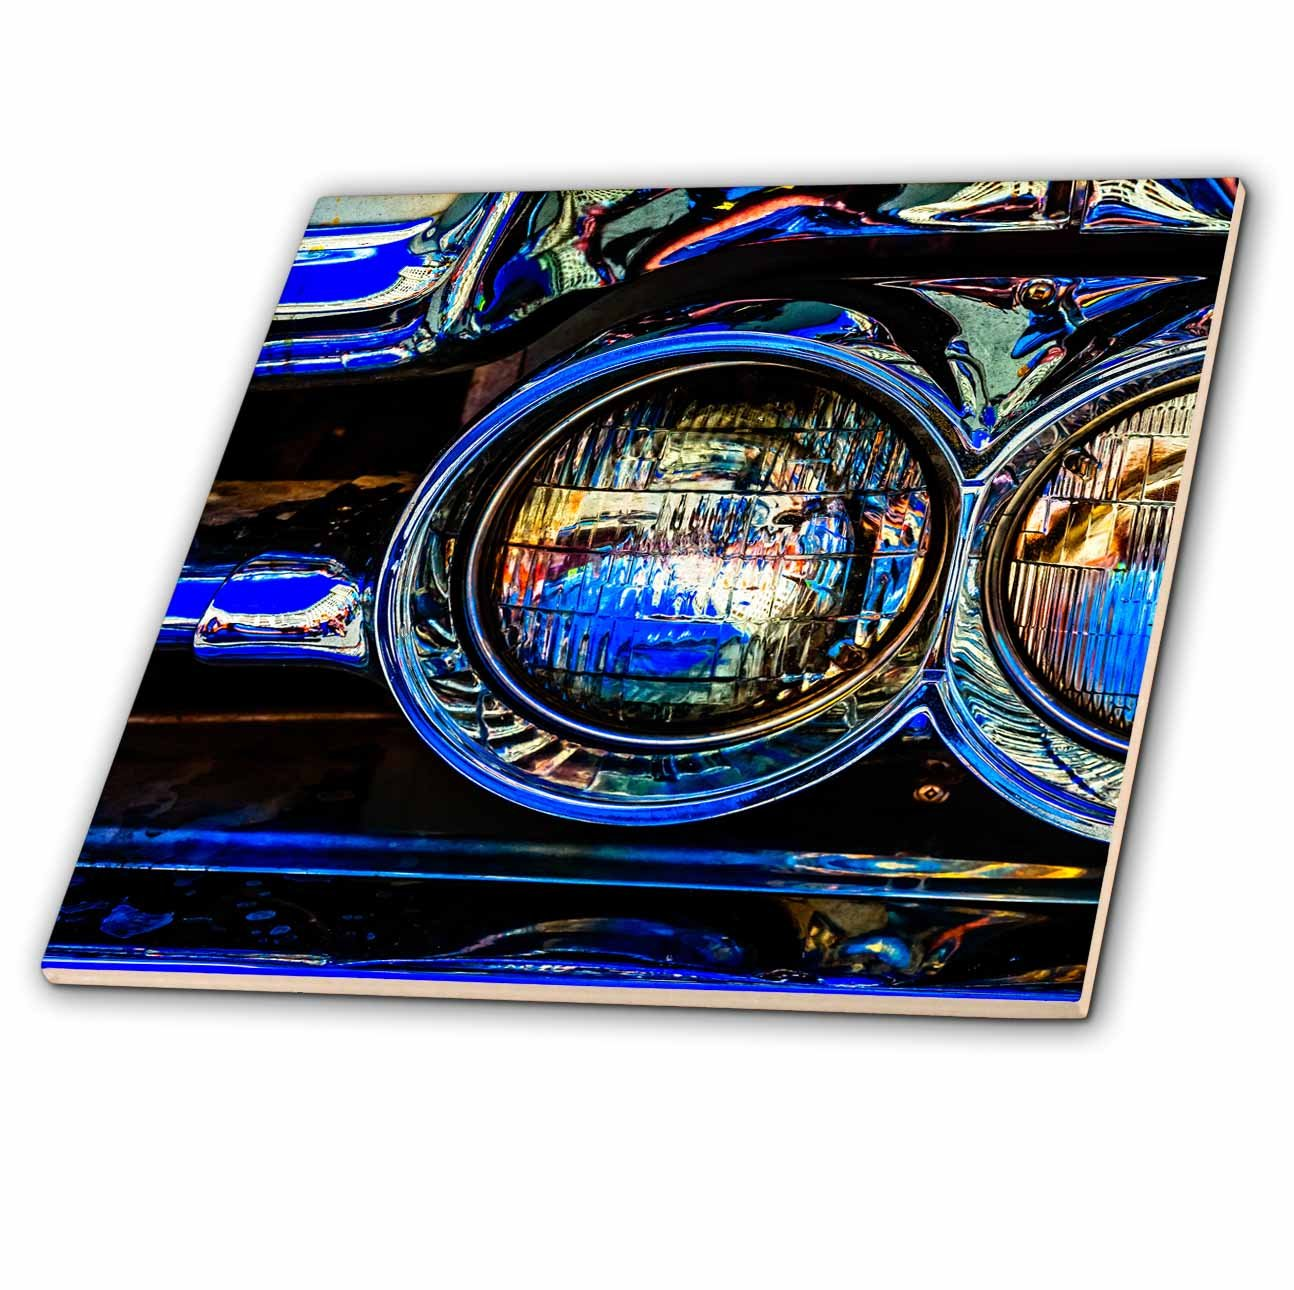 3dRose Alexis Photography - Transport Road - Headlights of a retro luxury car. Play of lights, shadows reflections - 8 Inch Ceramic Tile (ct_271954_3)